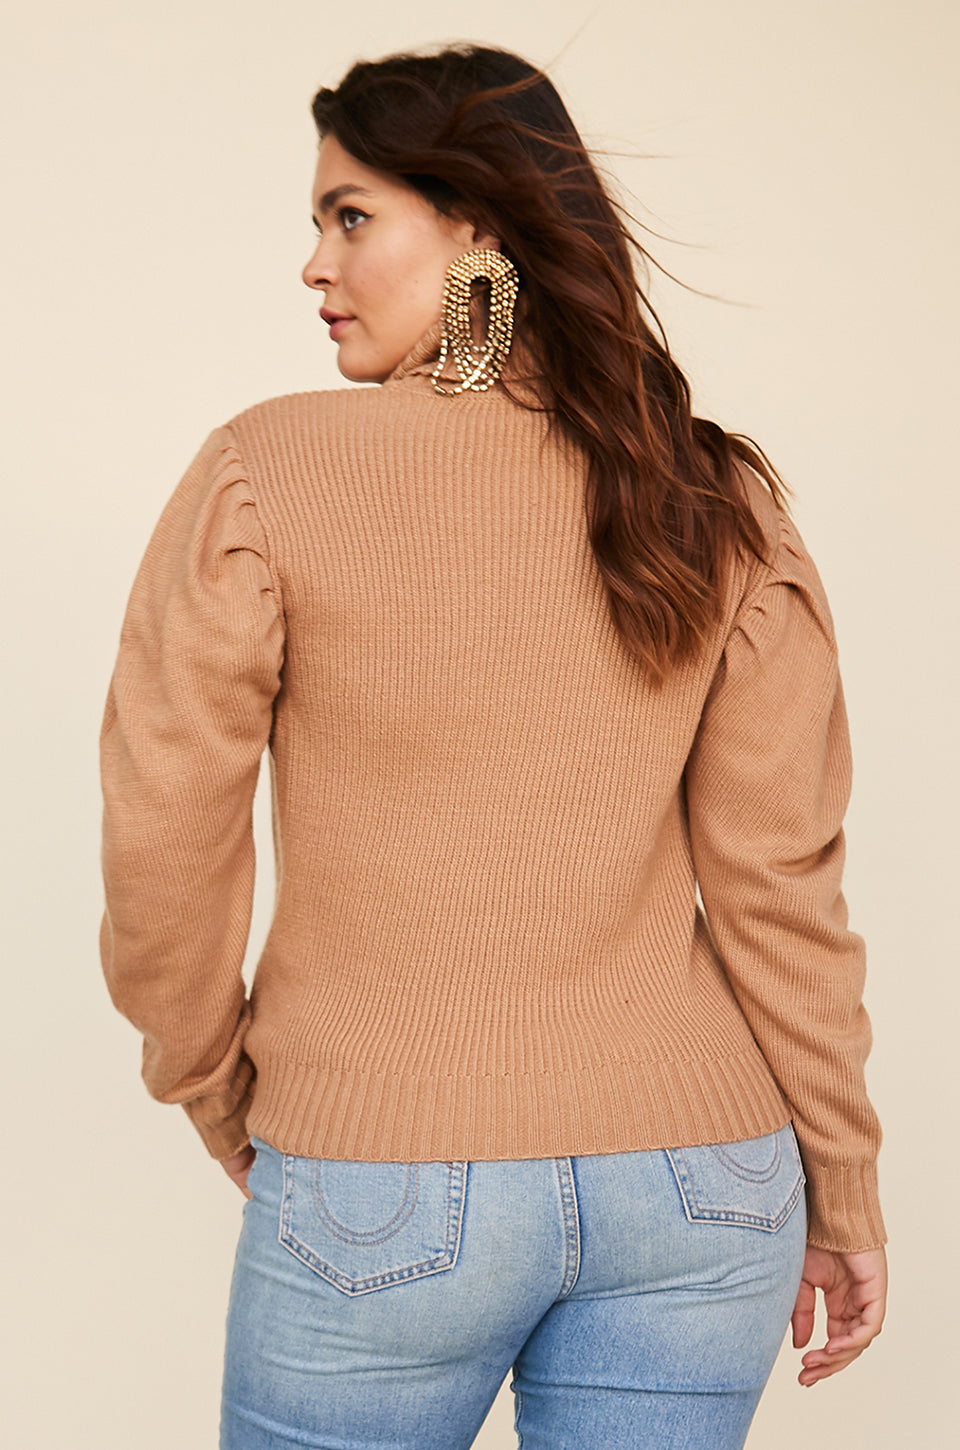 Valencia Sweater